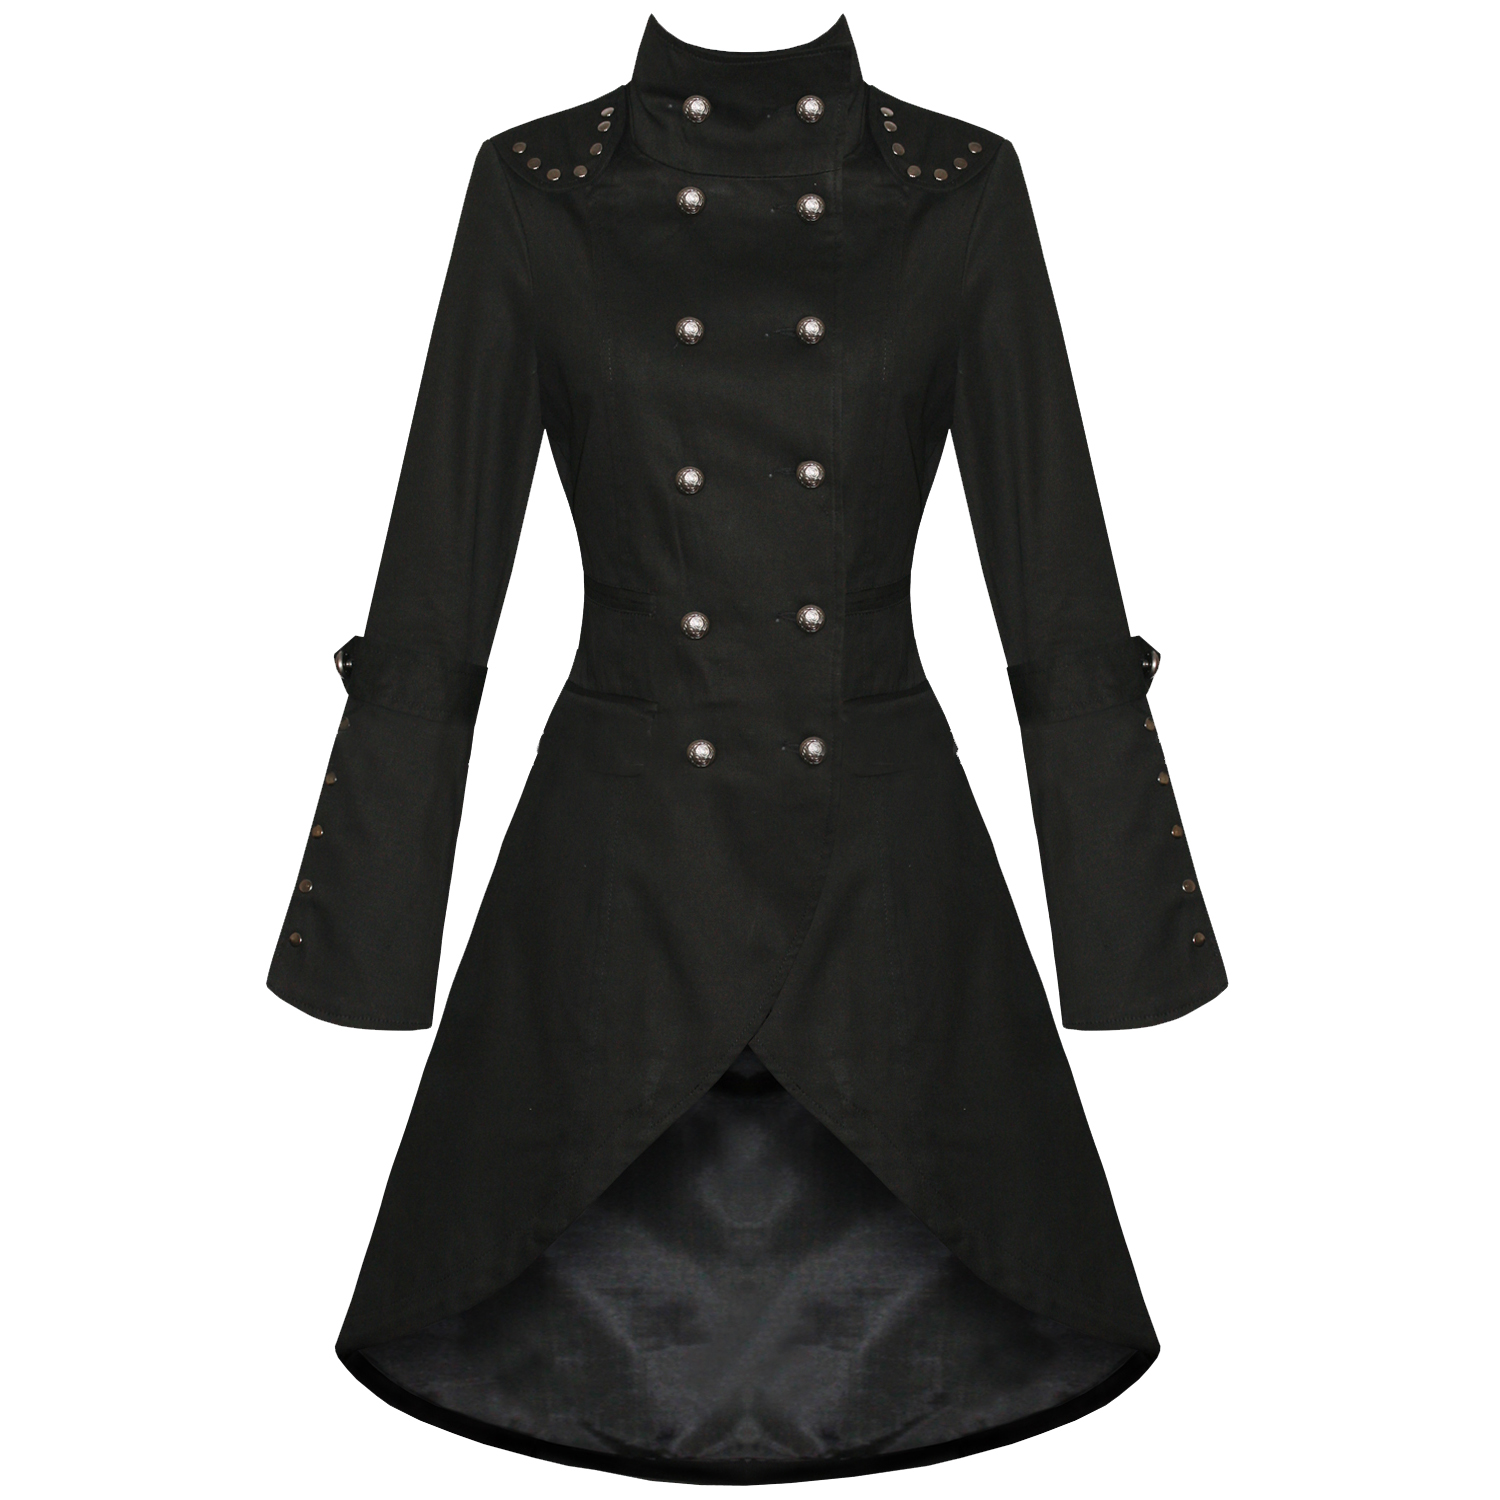 WOMENS LADIES NEW BLACK GOTHIC STEAMPUNK MILITARY COTTON COAT JACKET | EBay